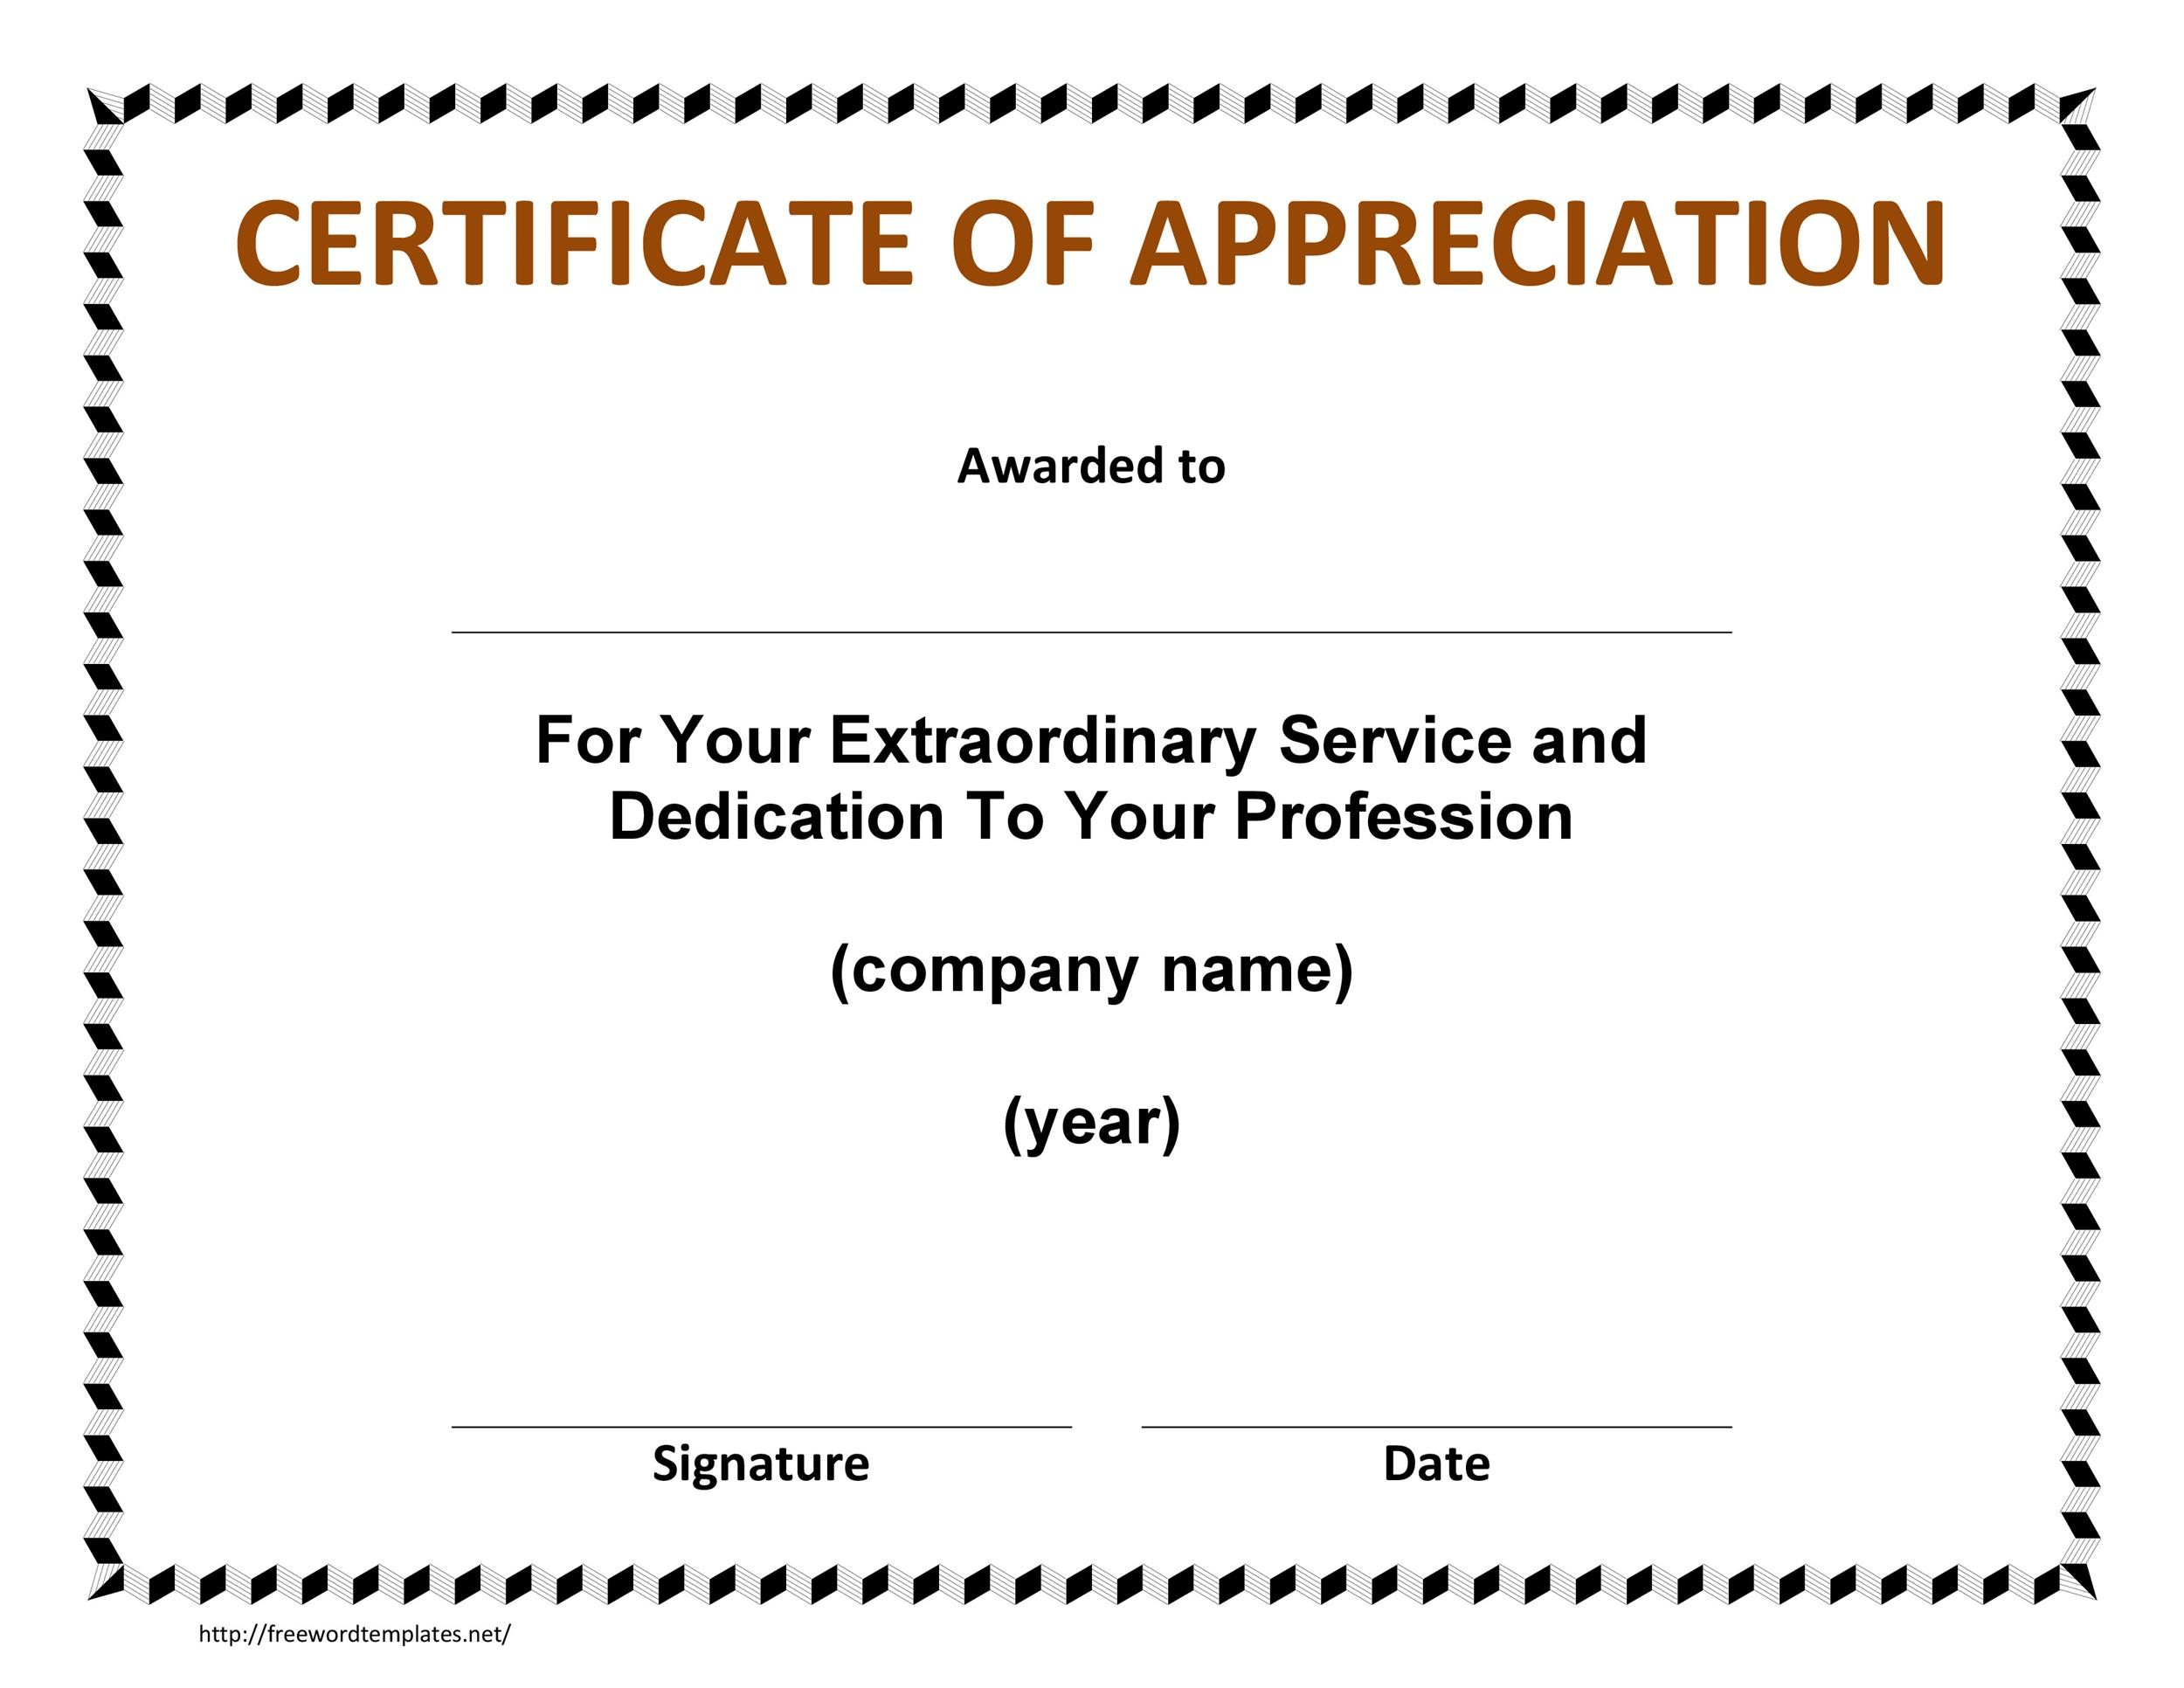 30 Free Certificate of Appreciation Templates and Letters - blank certificate of recognition